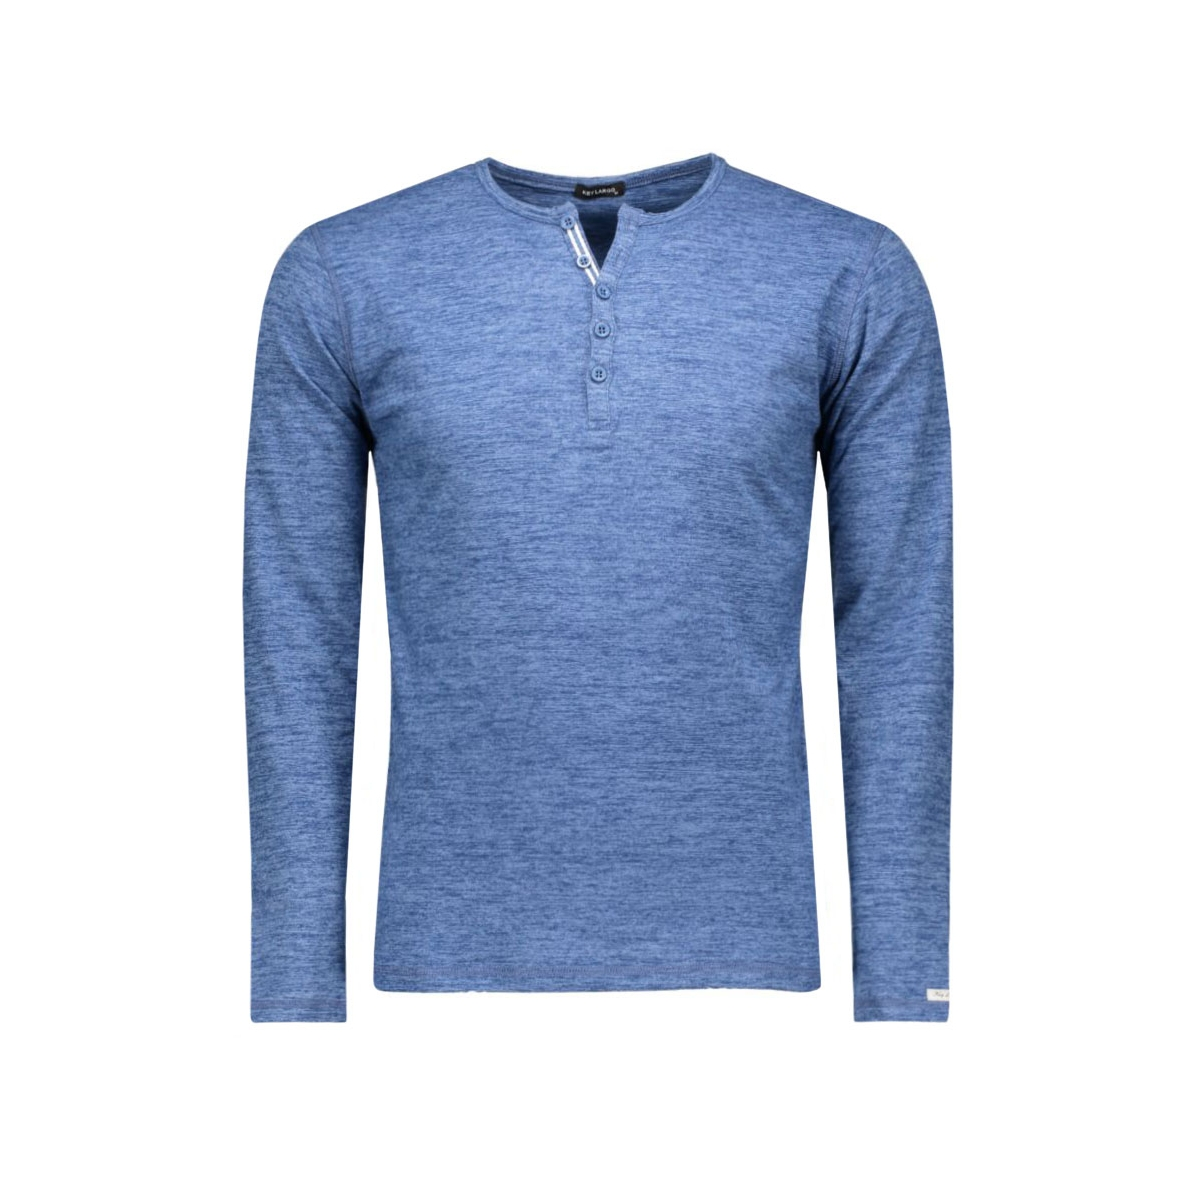 ls00184 key largo t-shirt 1208 blue